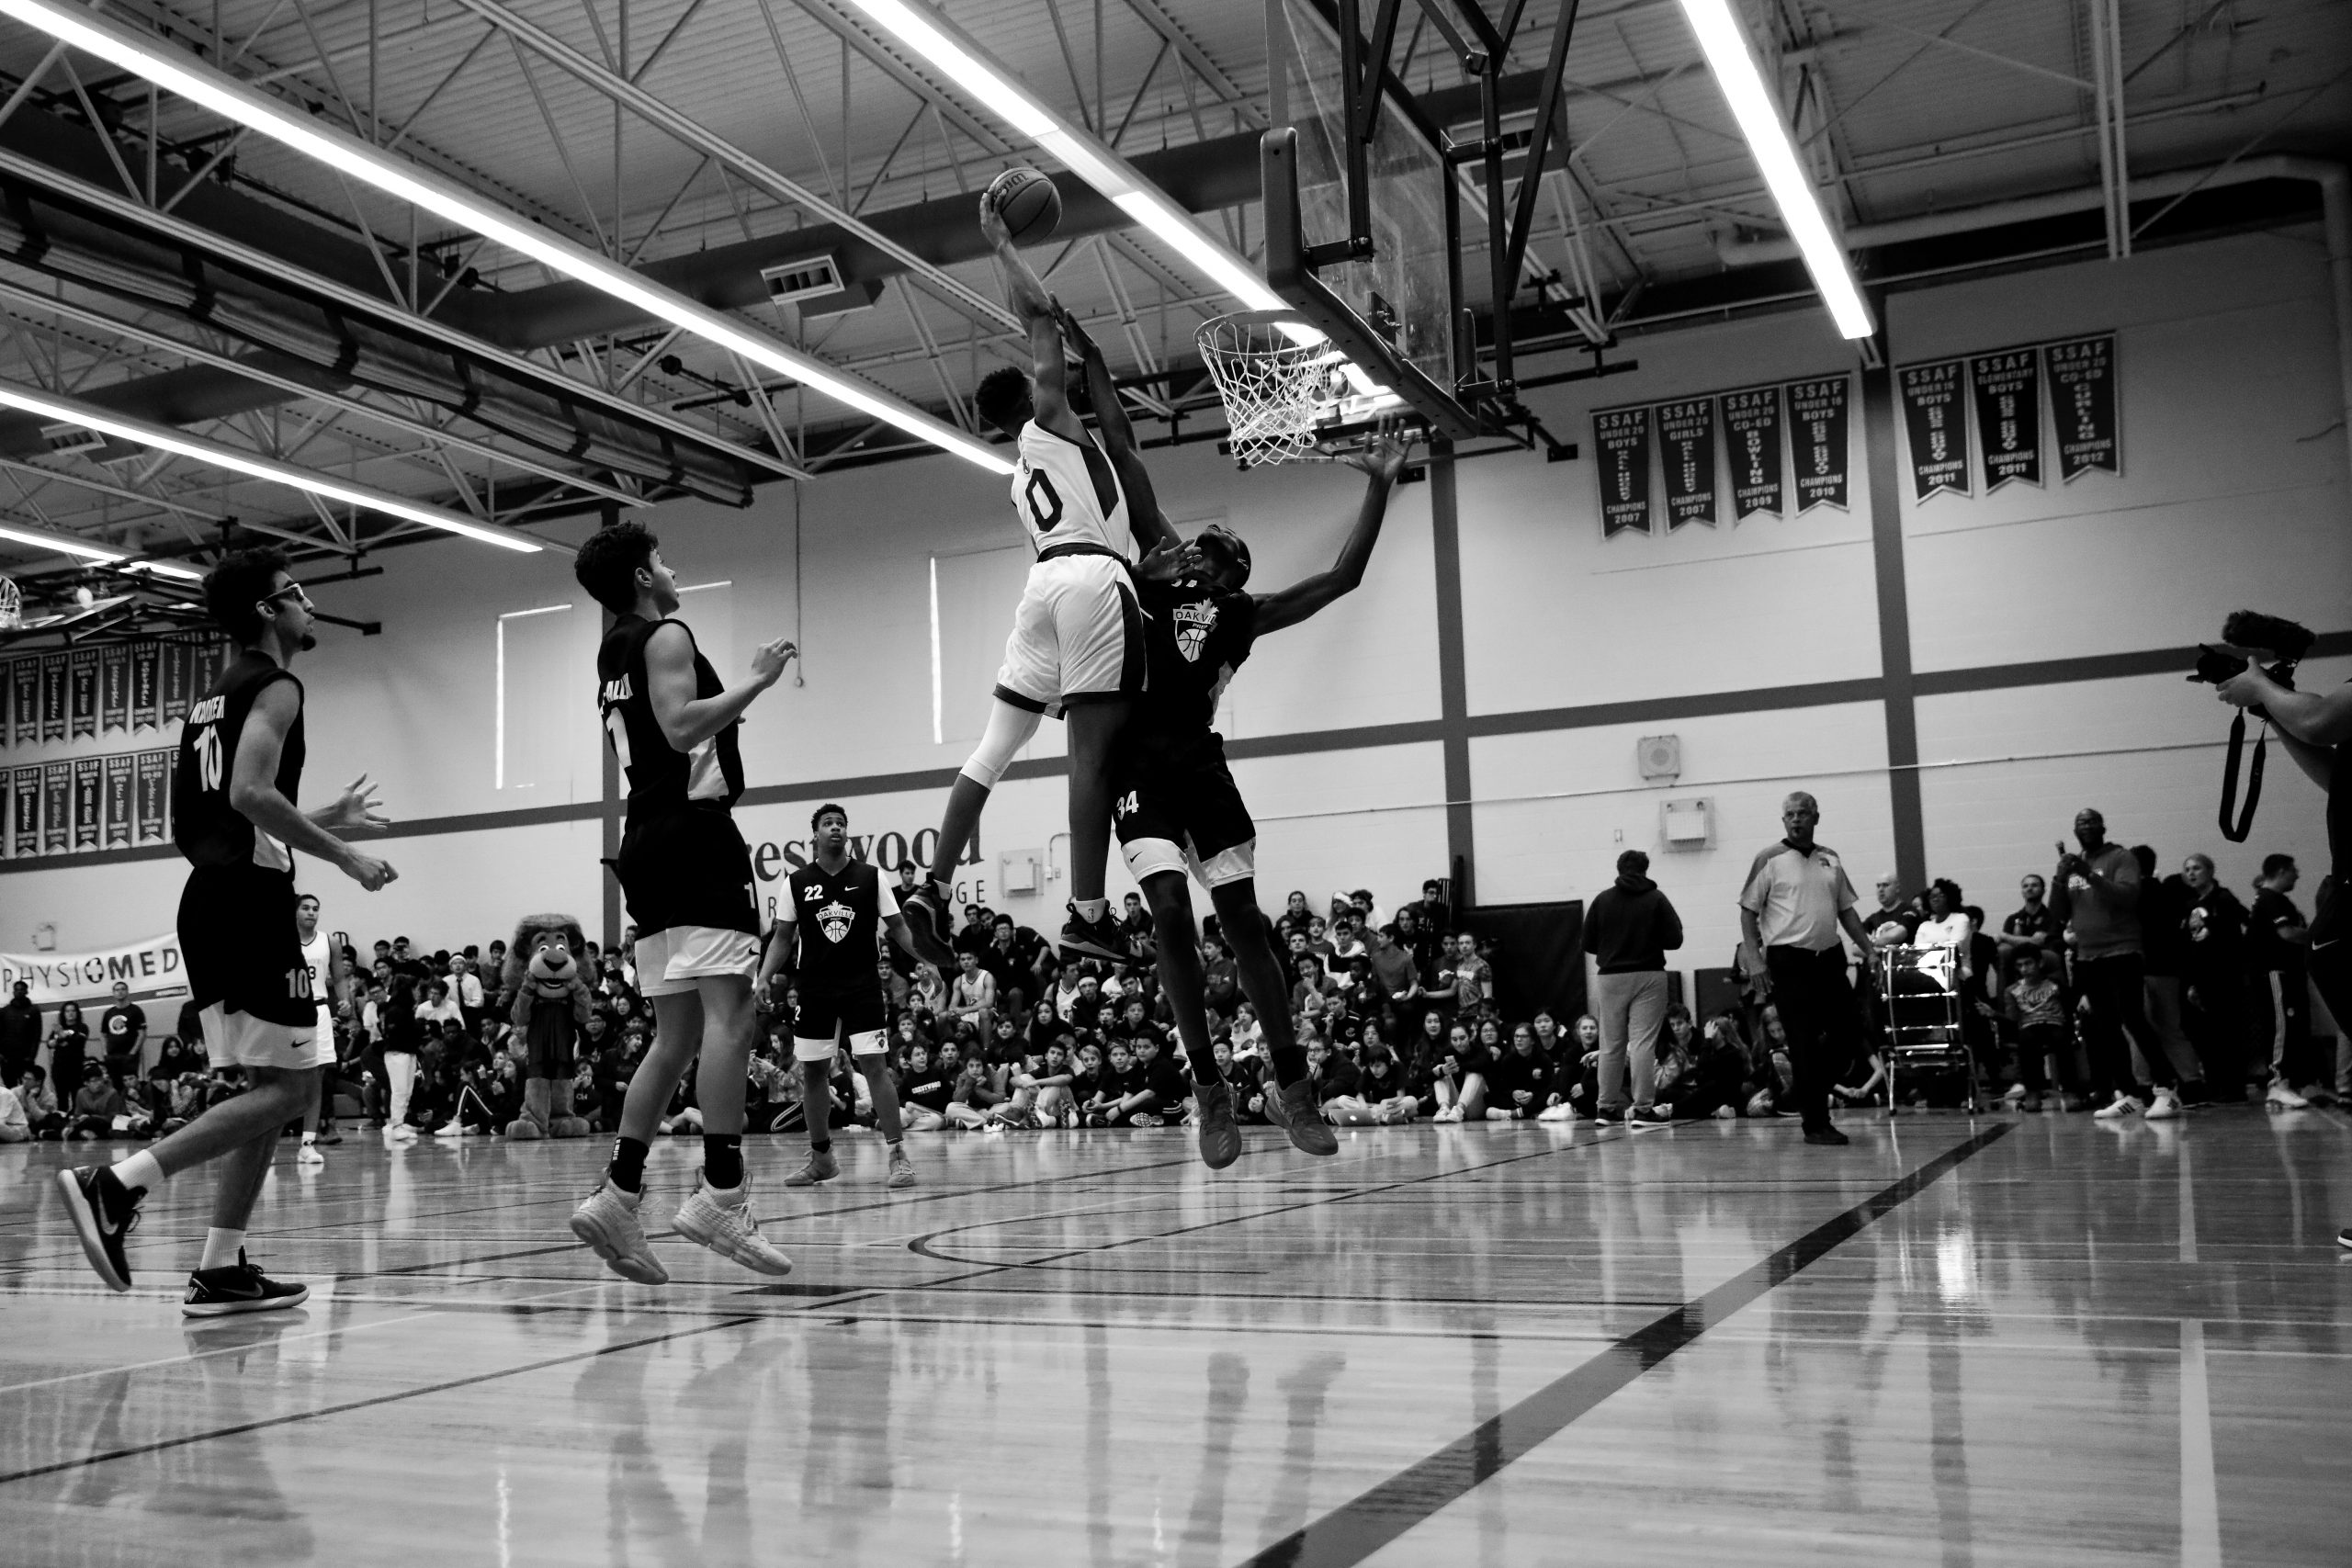 Jahcobi Neath, Crestwood basketball player with the huge dunk in his senior year.